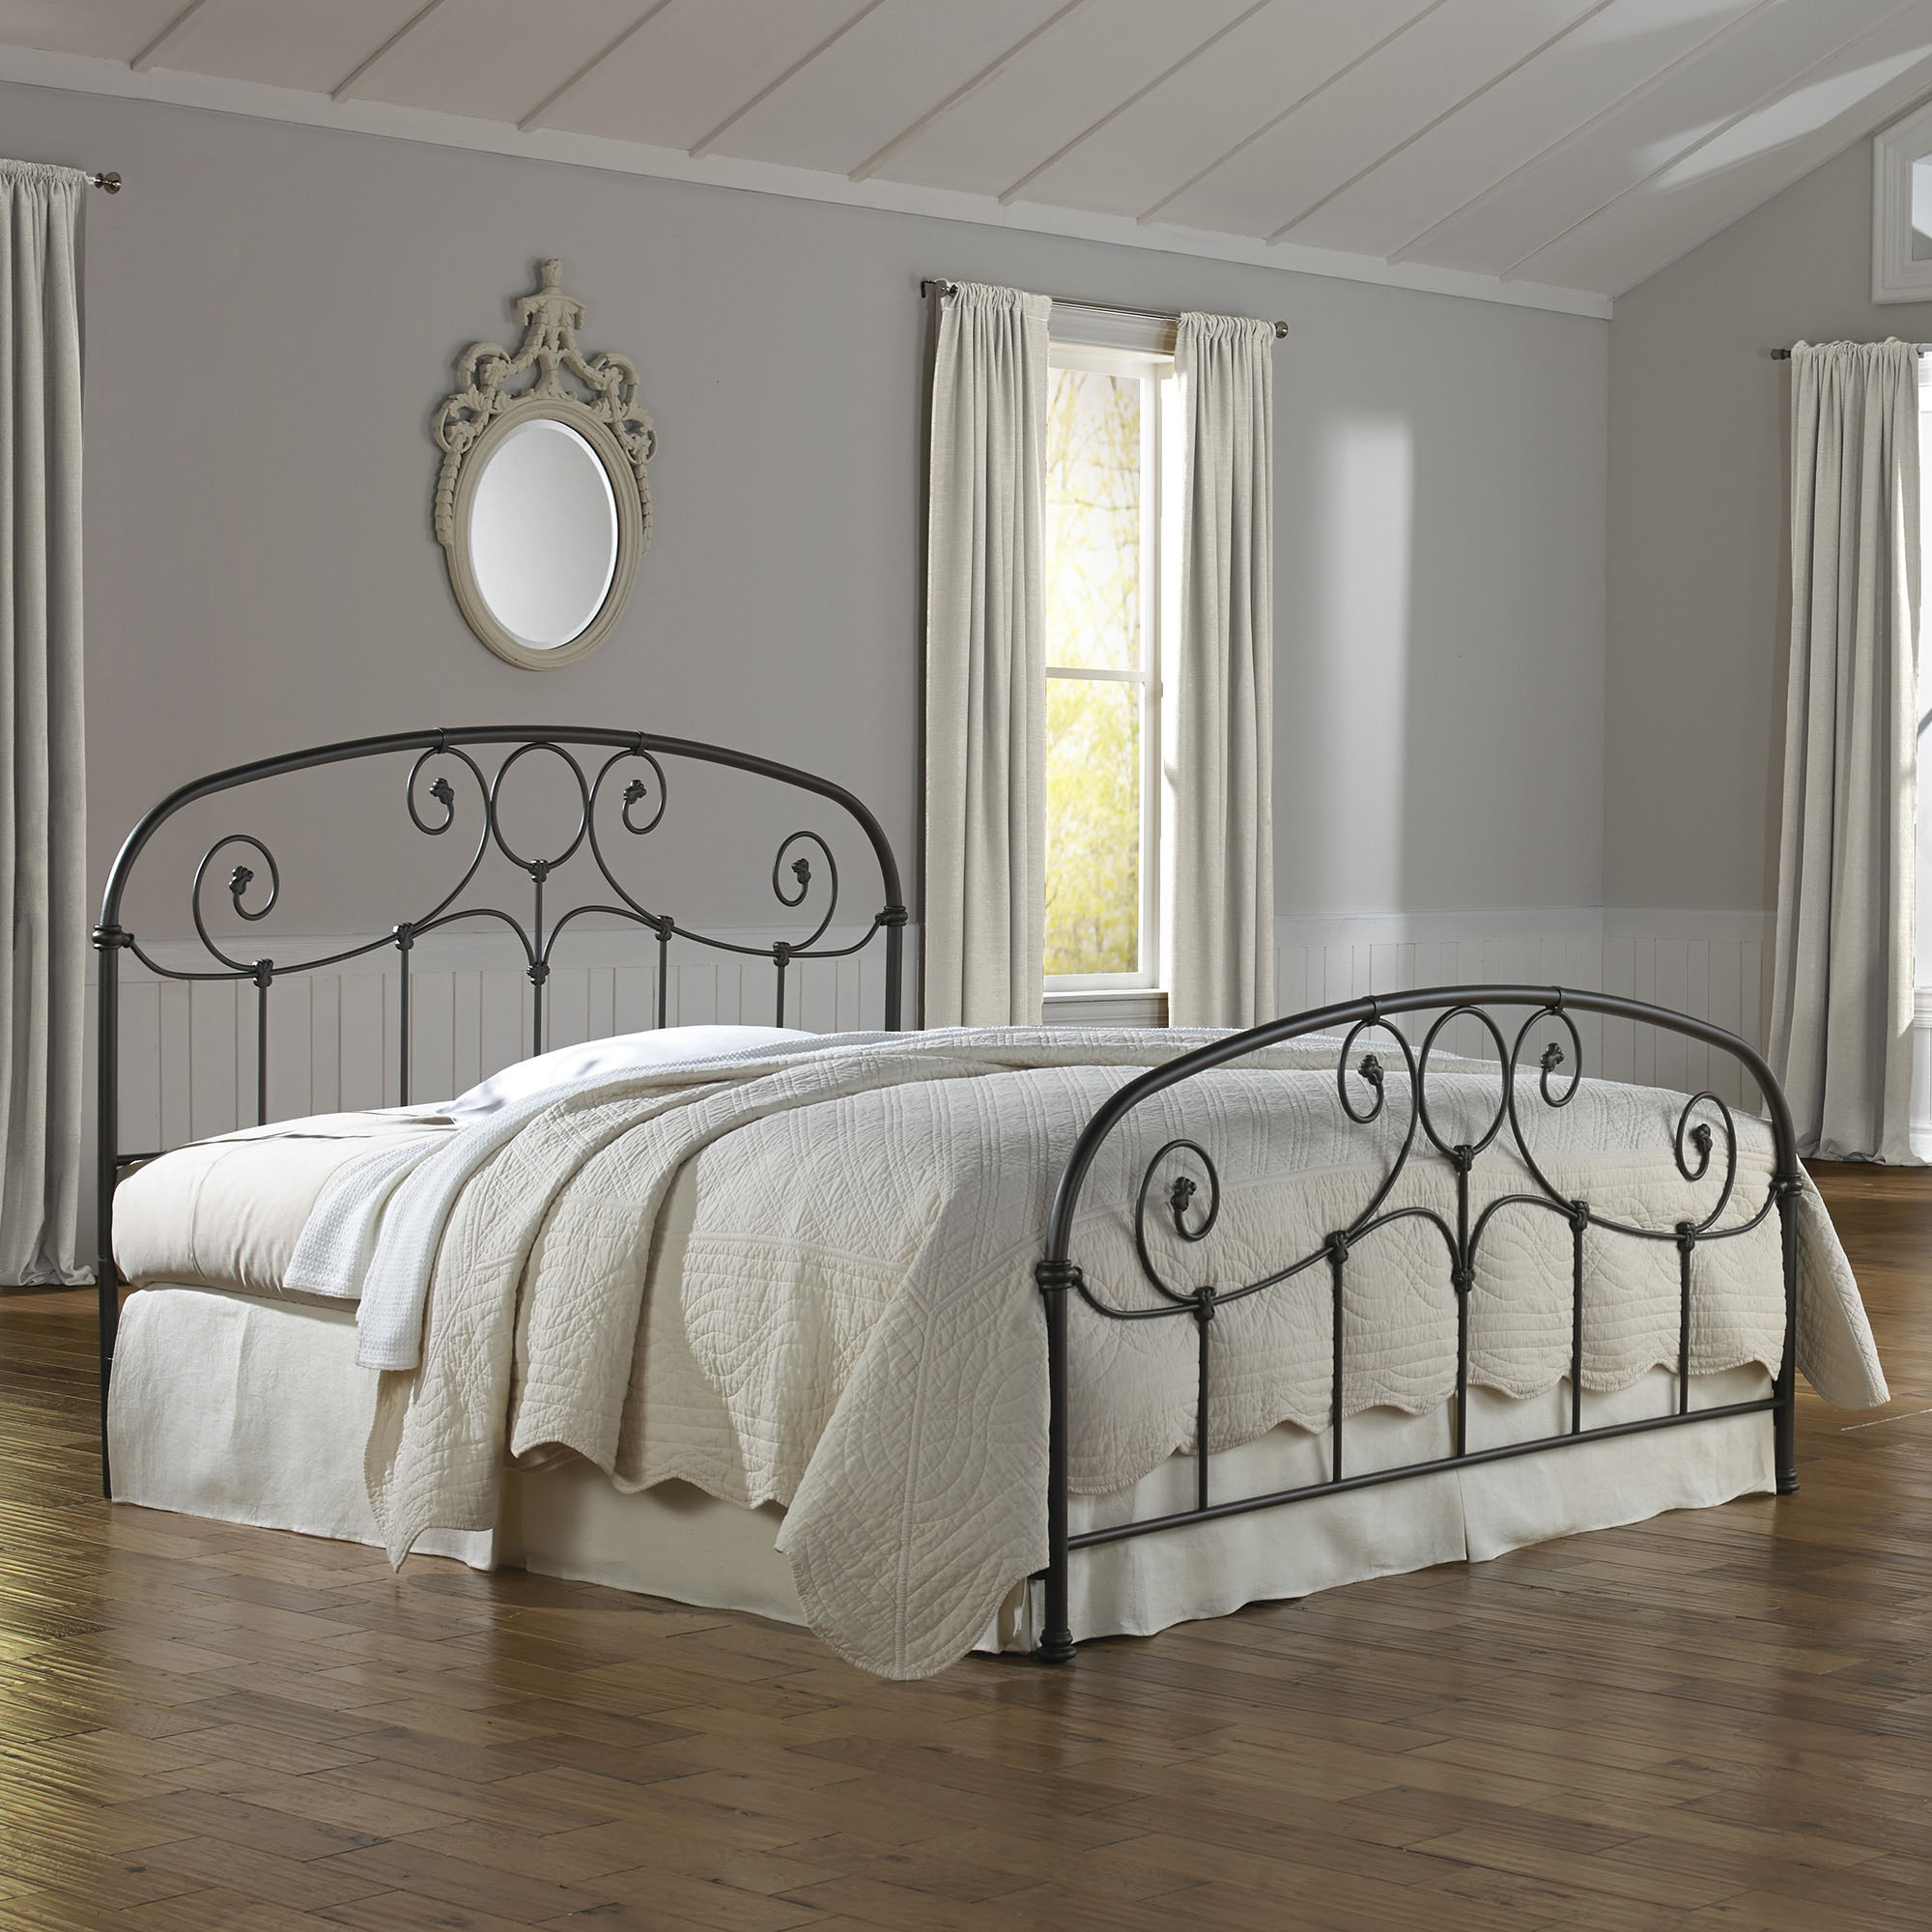 Grafton Complete Bed with Metal Scrollwork Panels, Rusty Gold Finish, Multiple sizes available